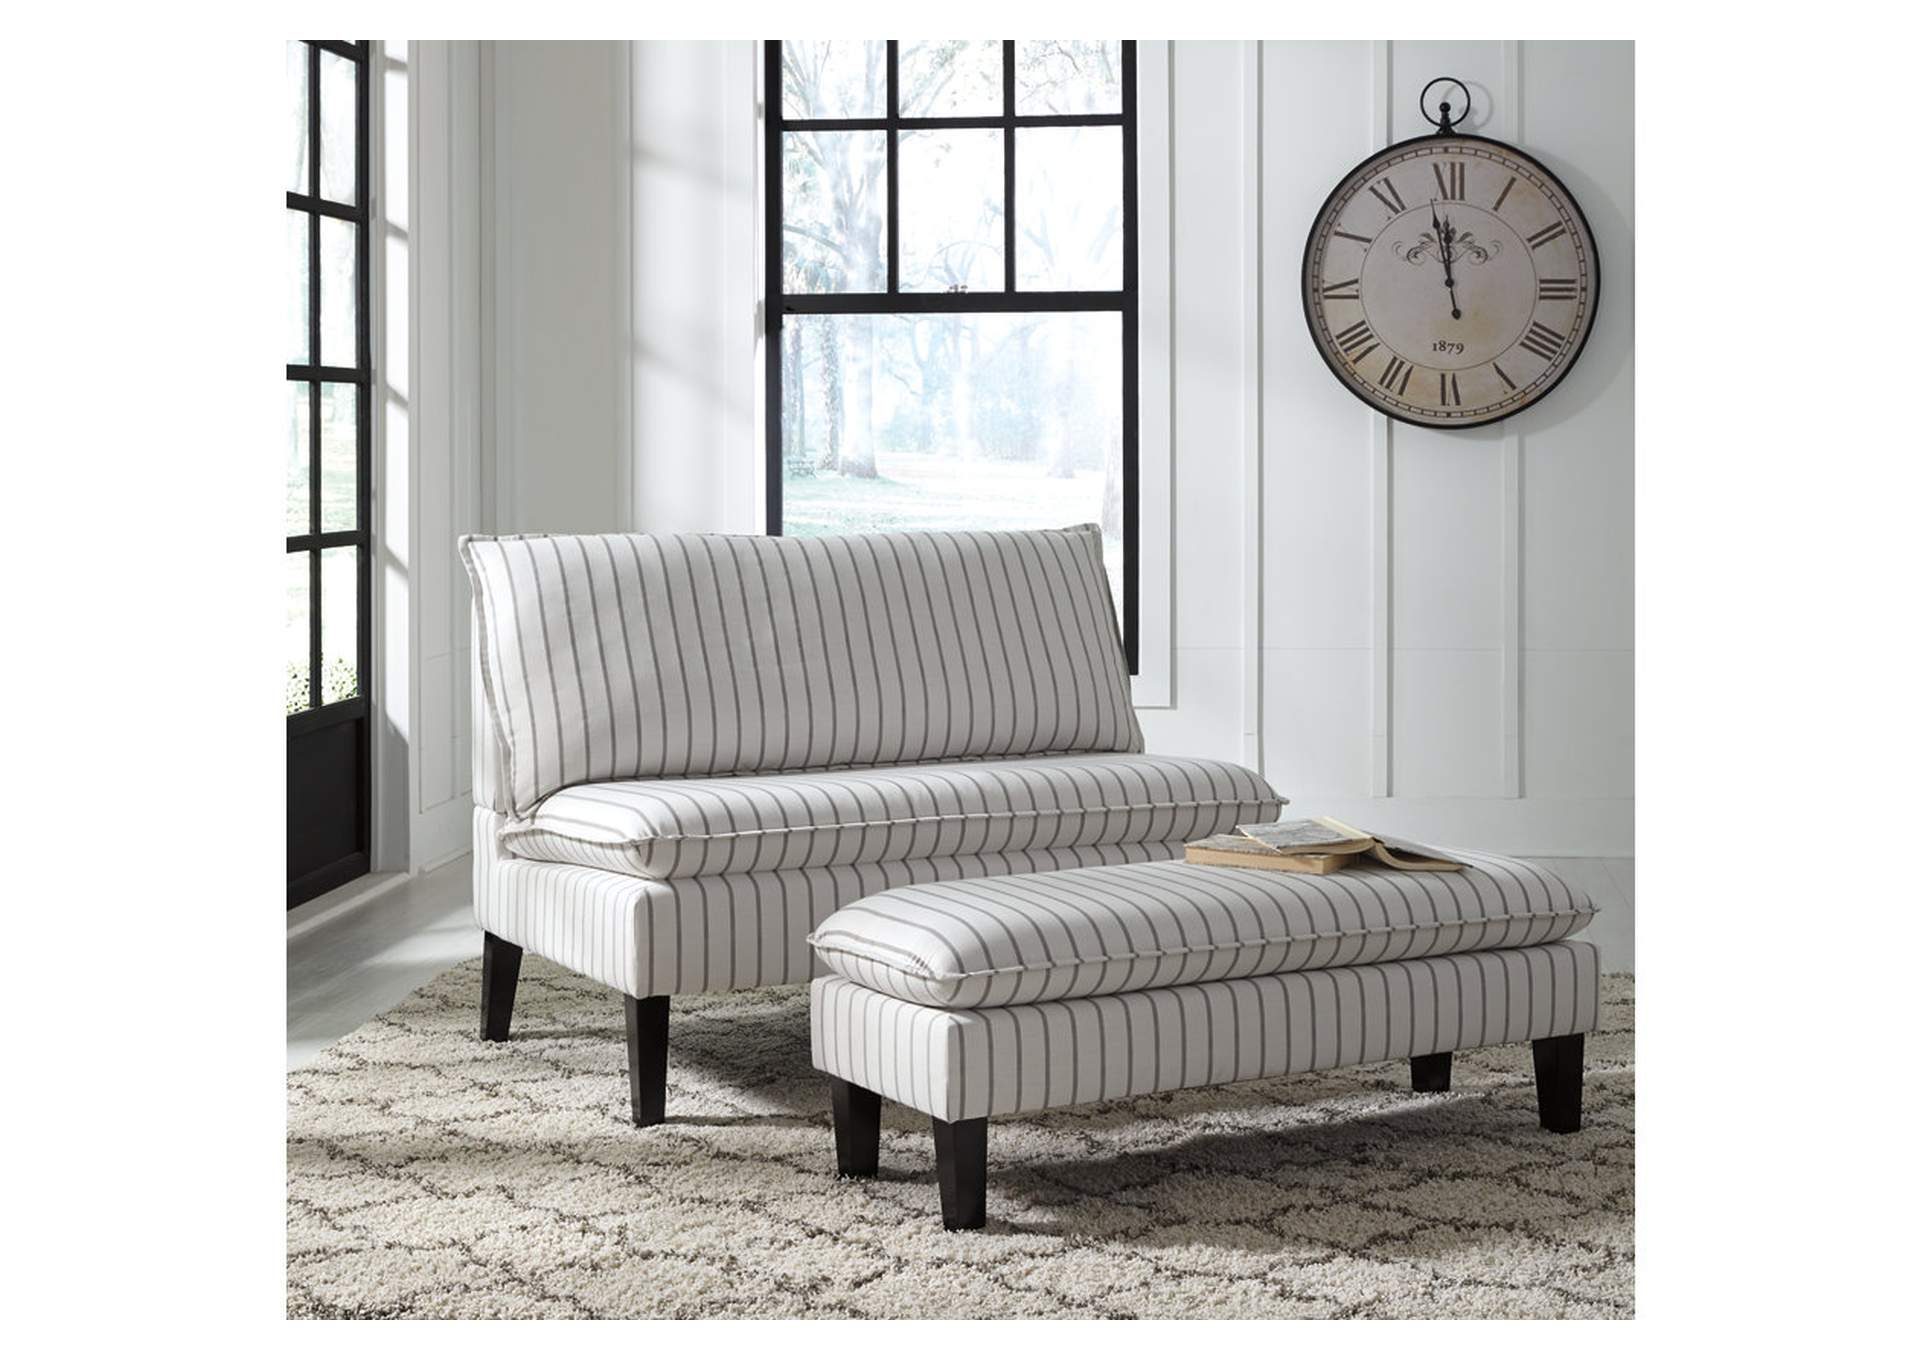 Arrowrock White/Gray Accent Bench,Signature Design By Ashley